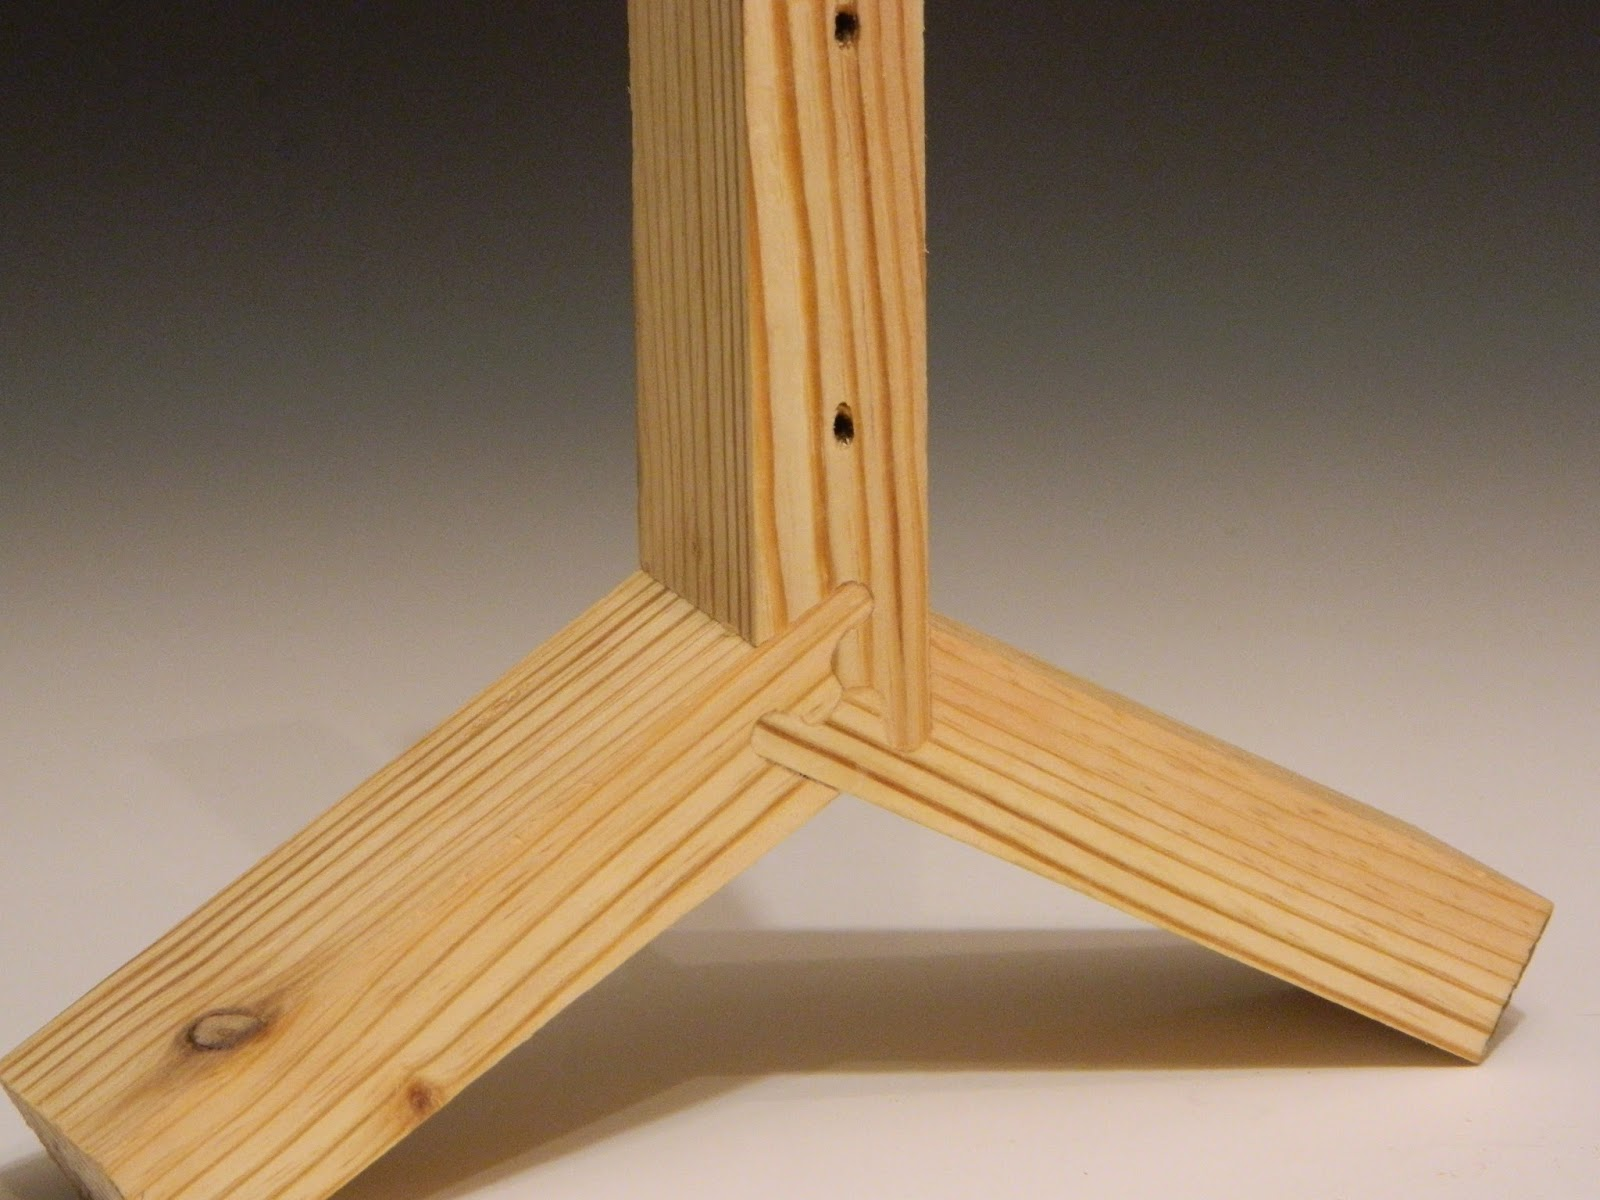 4d Furniture Thoughts Creative Cnc Joinery And Other Cnc